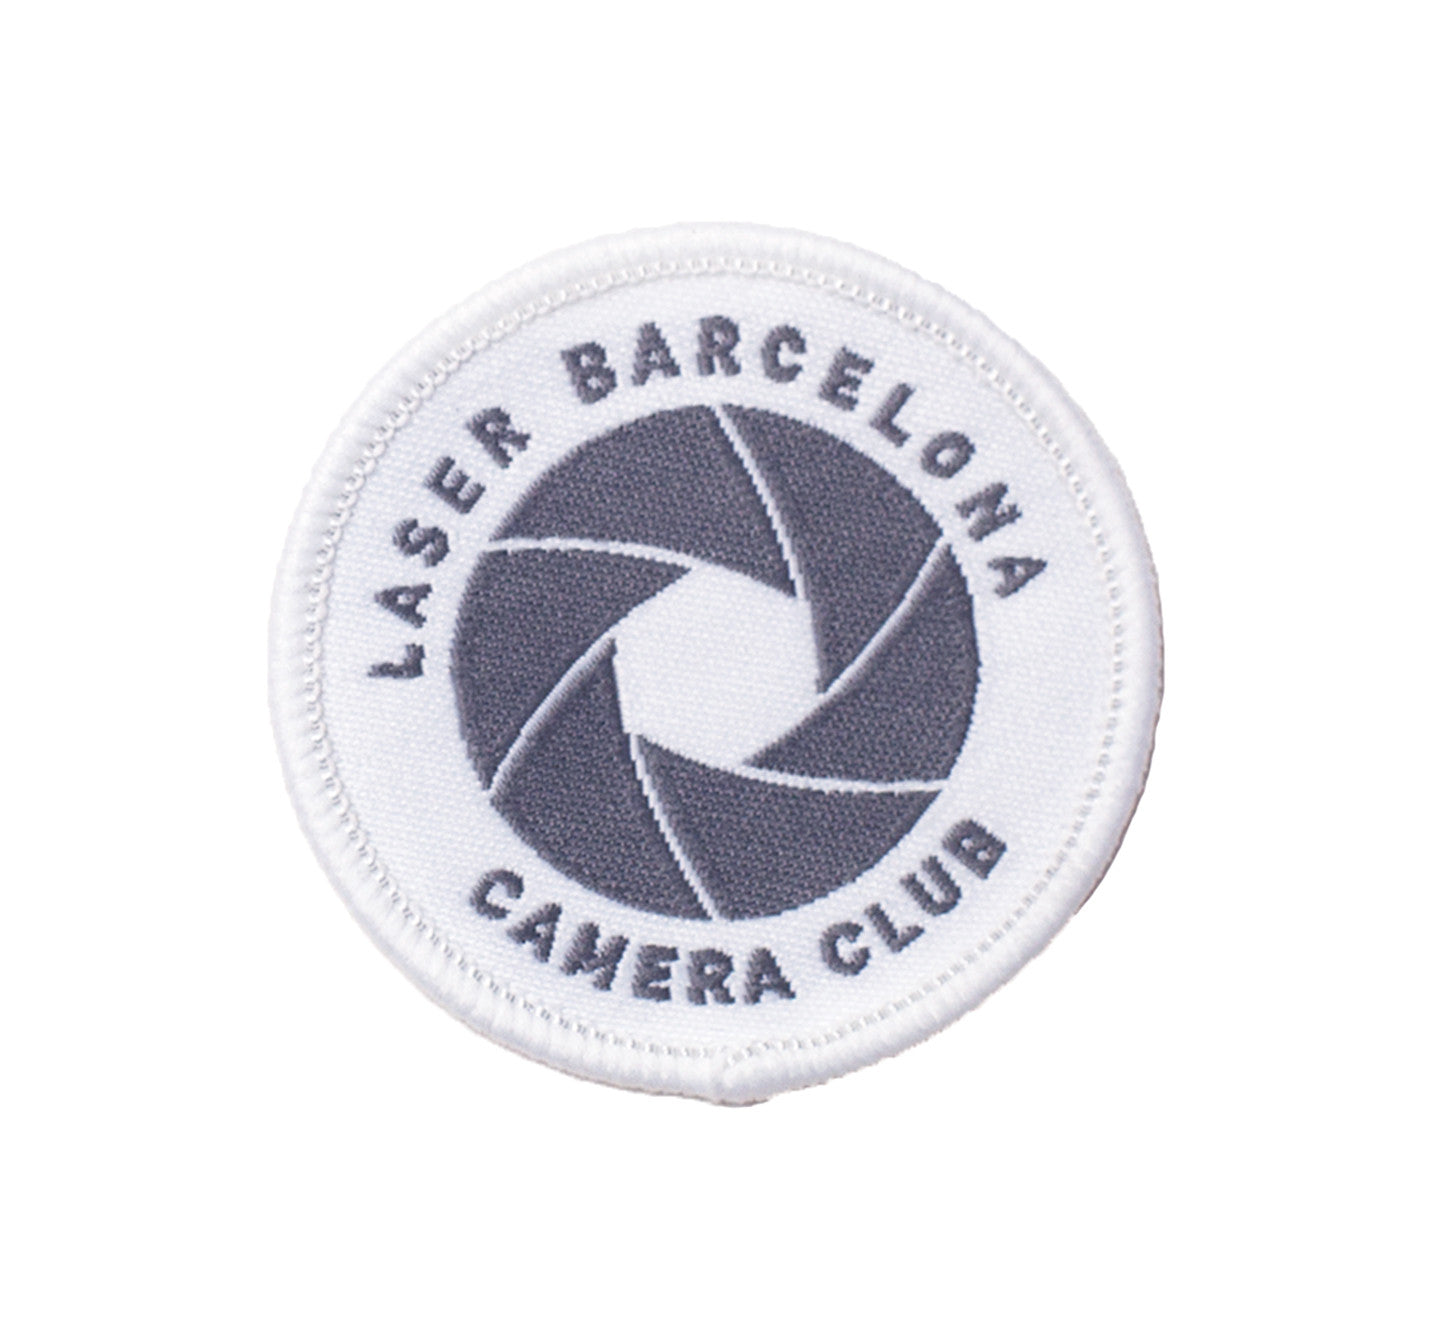 CAMERA CLUB PATCH